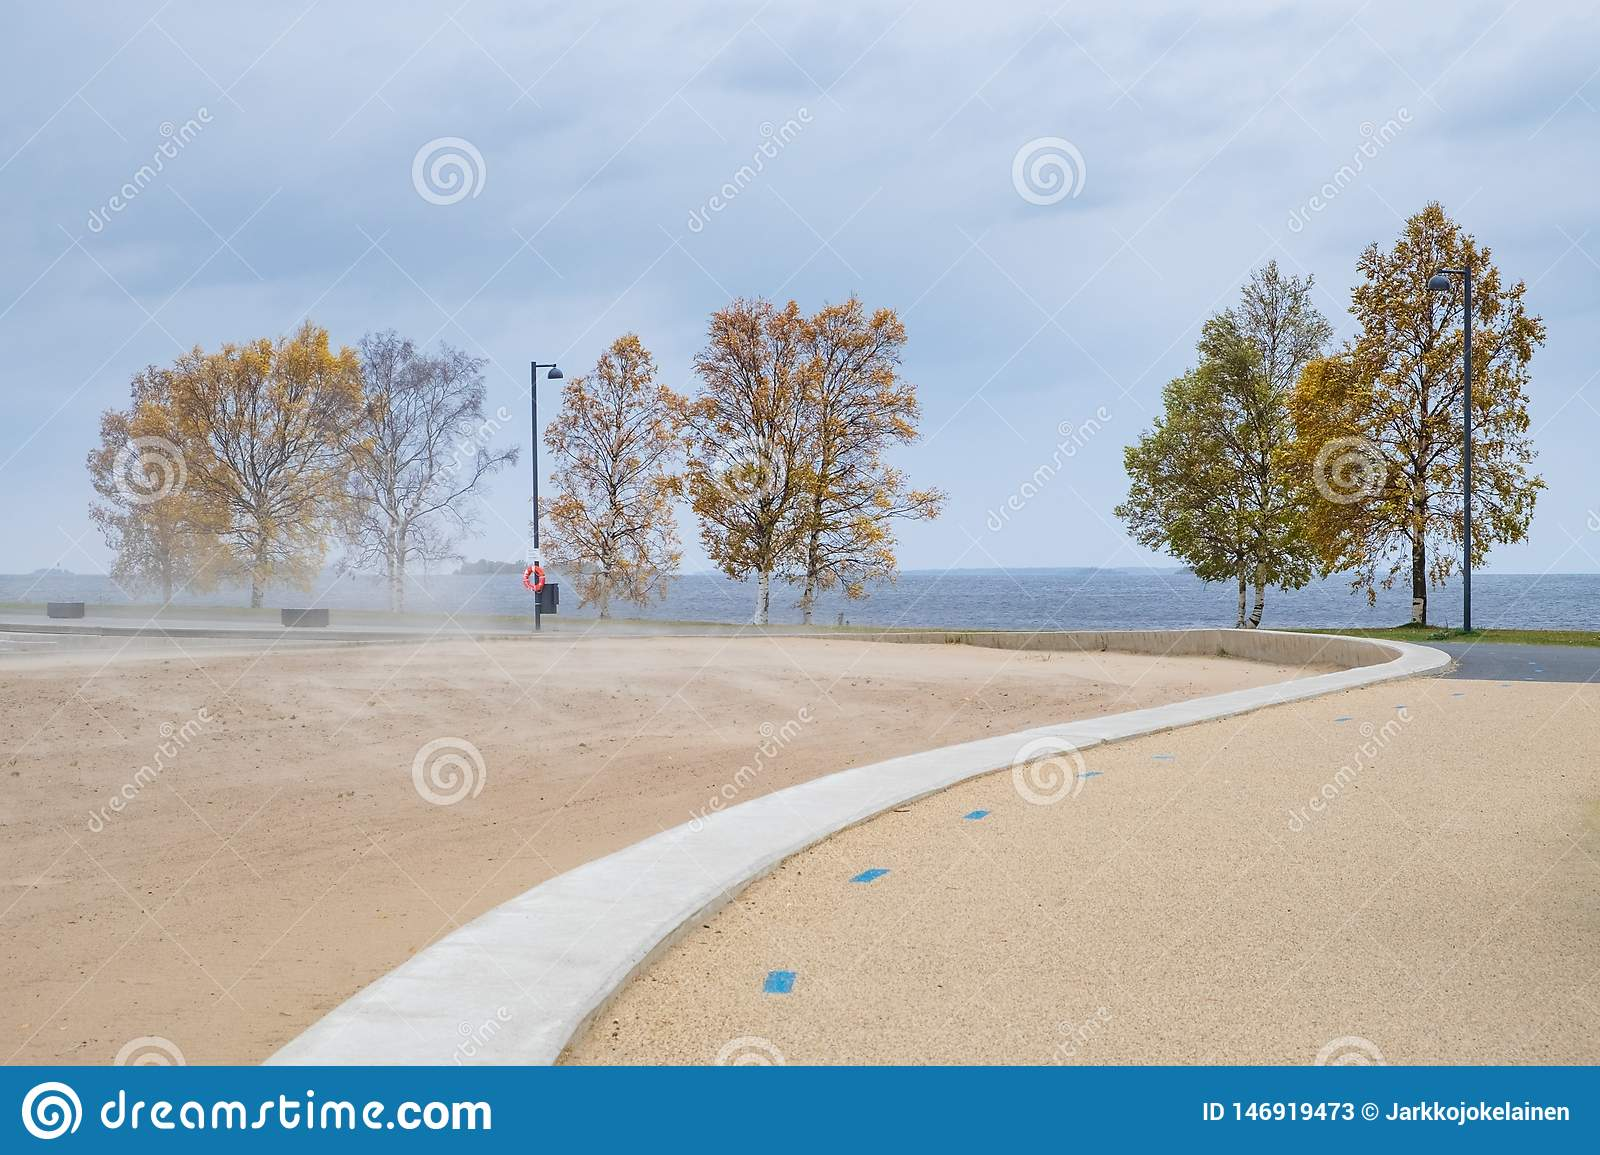 Birch trees and blowing sand on a windy autumn day